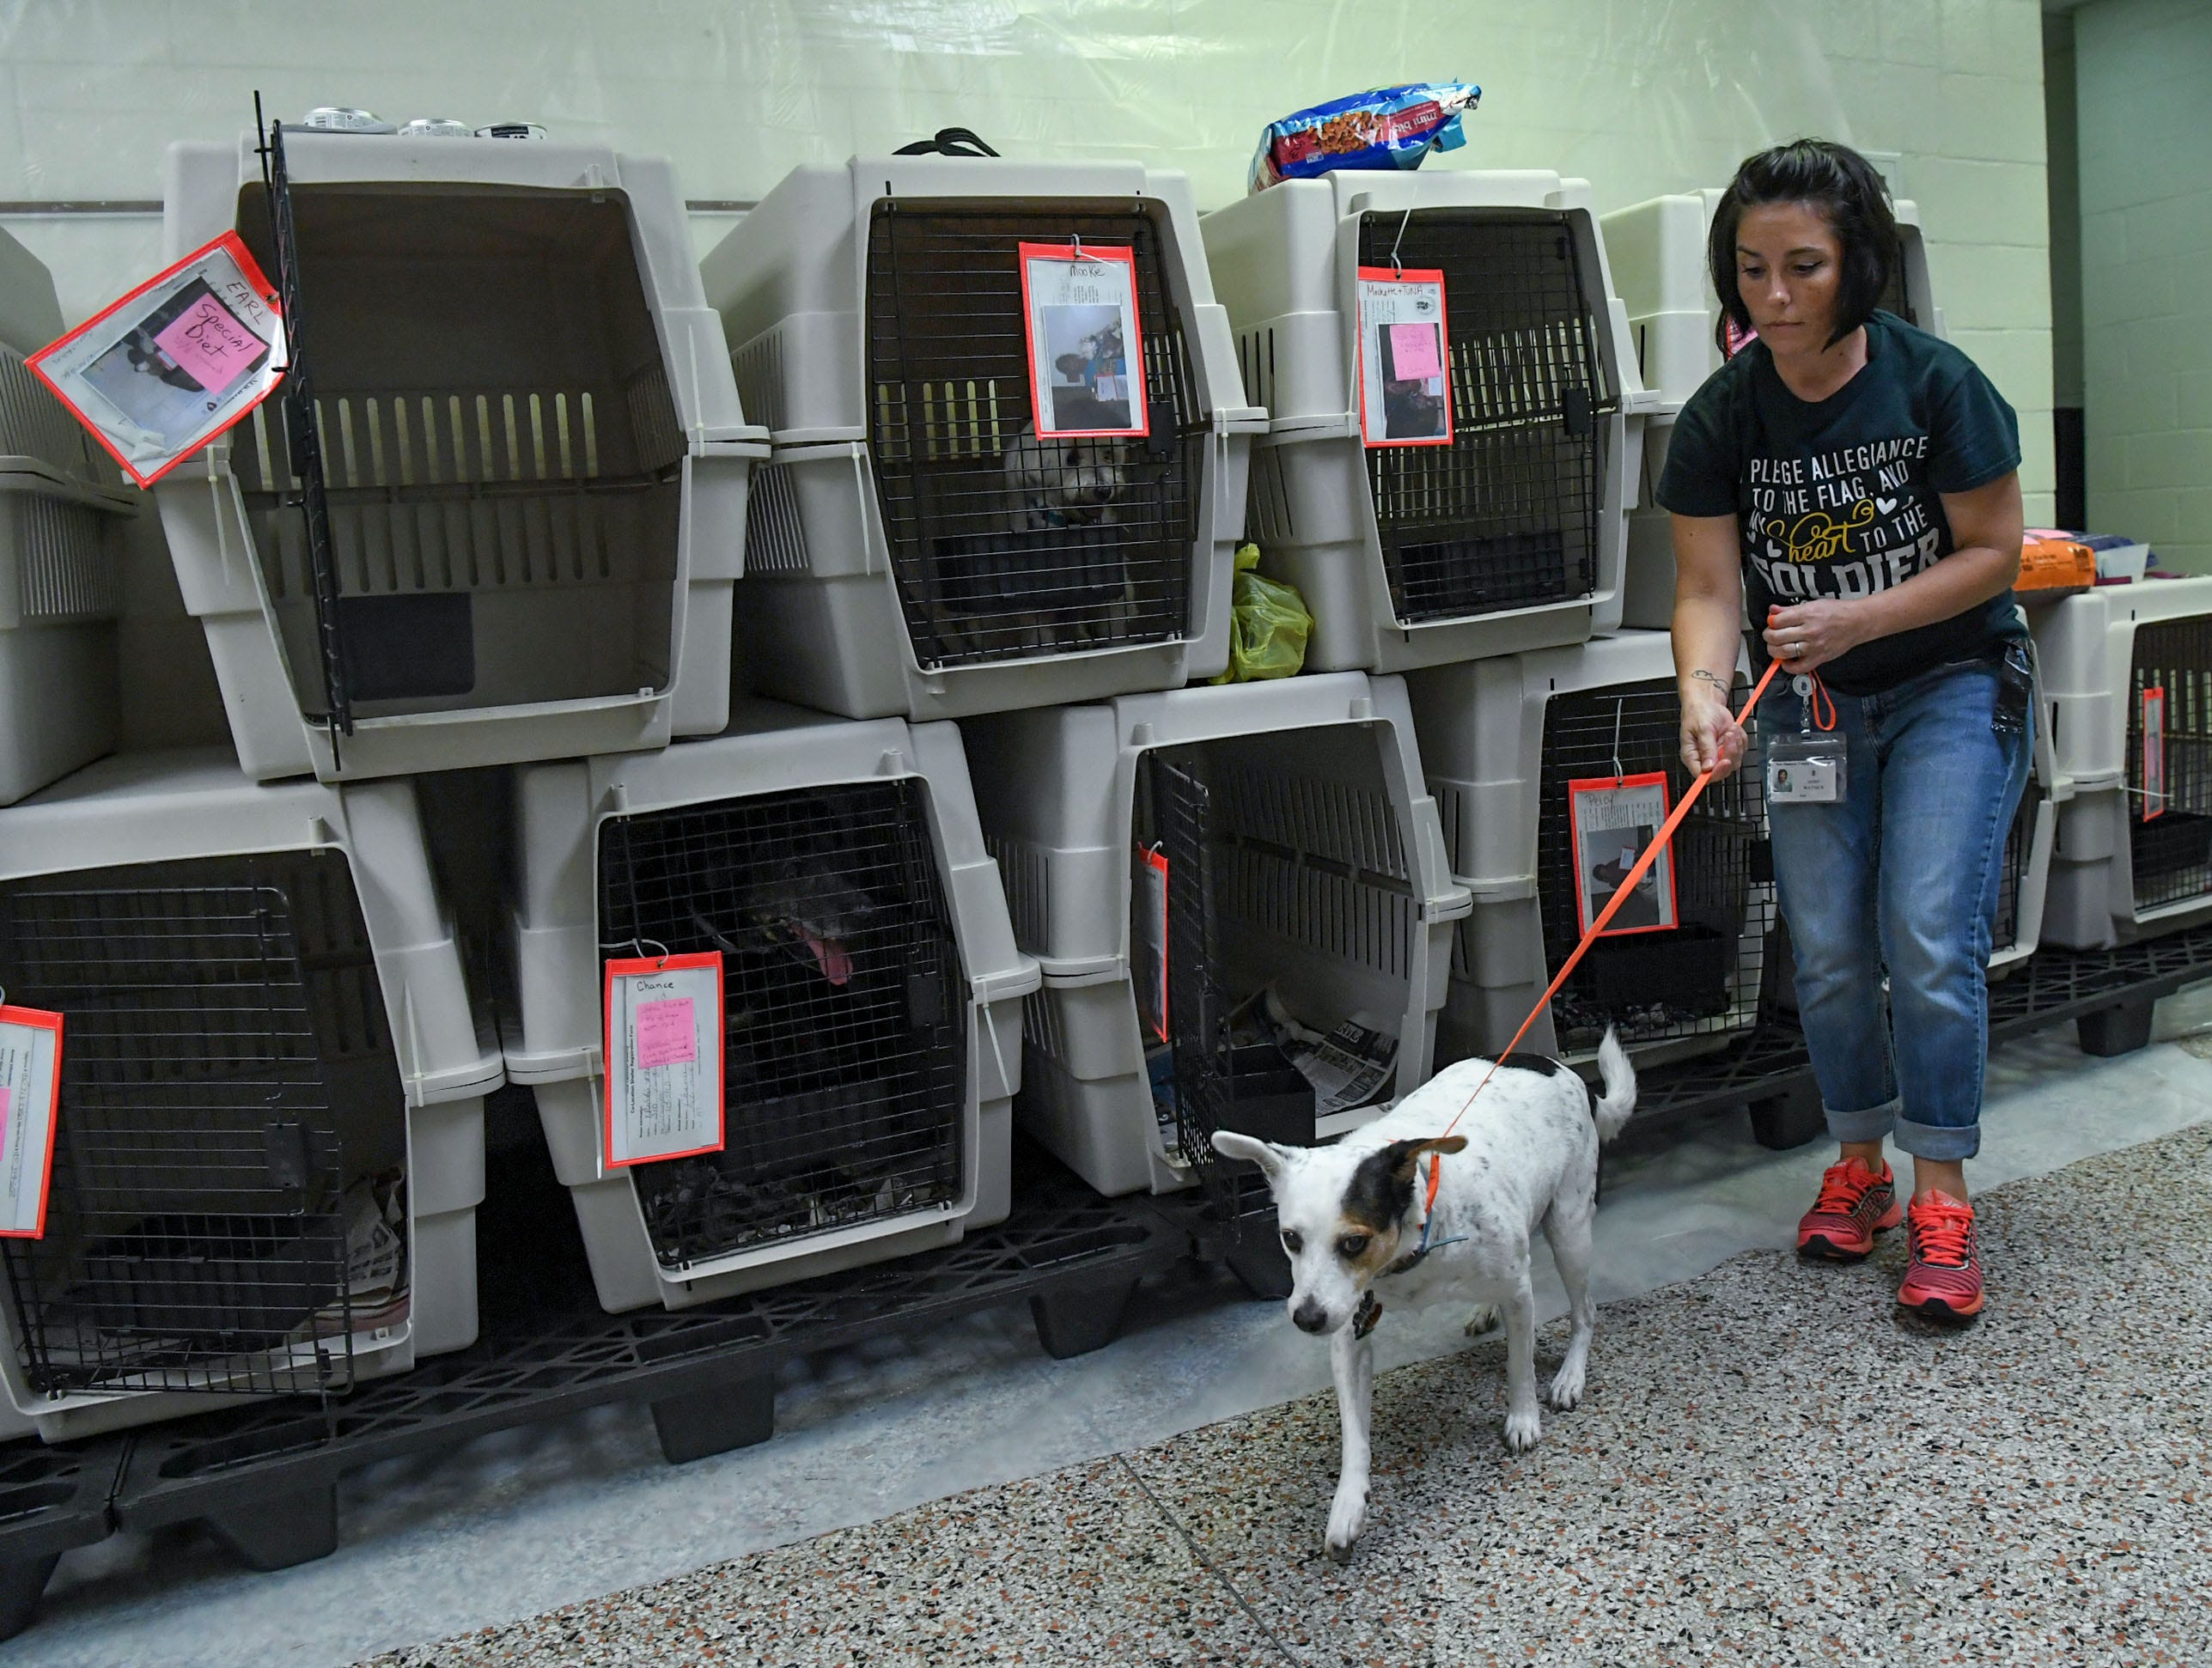 Jaime Waynick, an employee with New Hanover County, takes a dog for a walk at the county emergency shelter held at Trask Middle School in Wilmington, North Carolina on Tuesday, September 11, 2018. Hurricane Florence is expected to make landfall in Wilmington Thursday night. (Ken Ruinard / Greenville News / Gannett USA Today Network / 2018 )